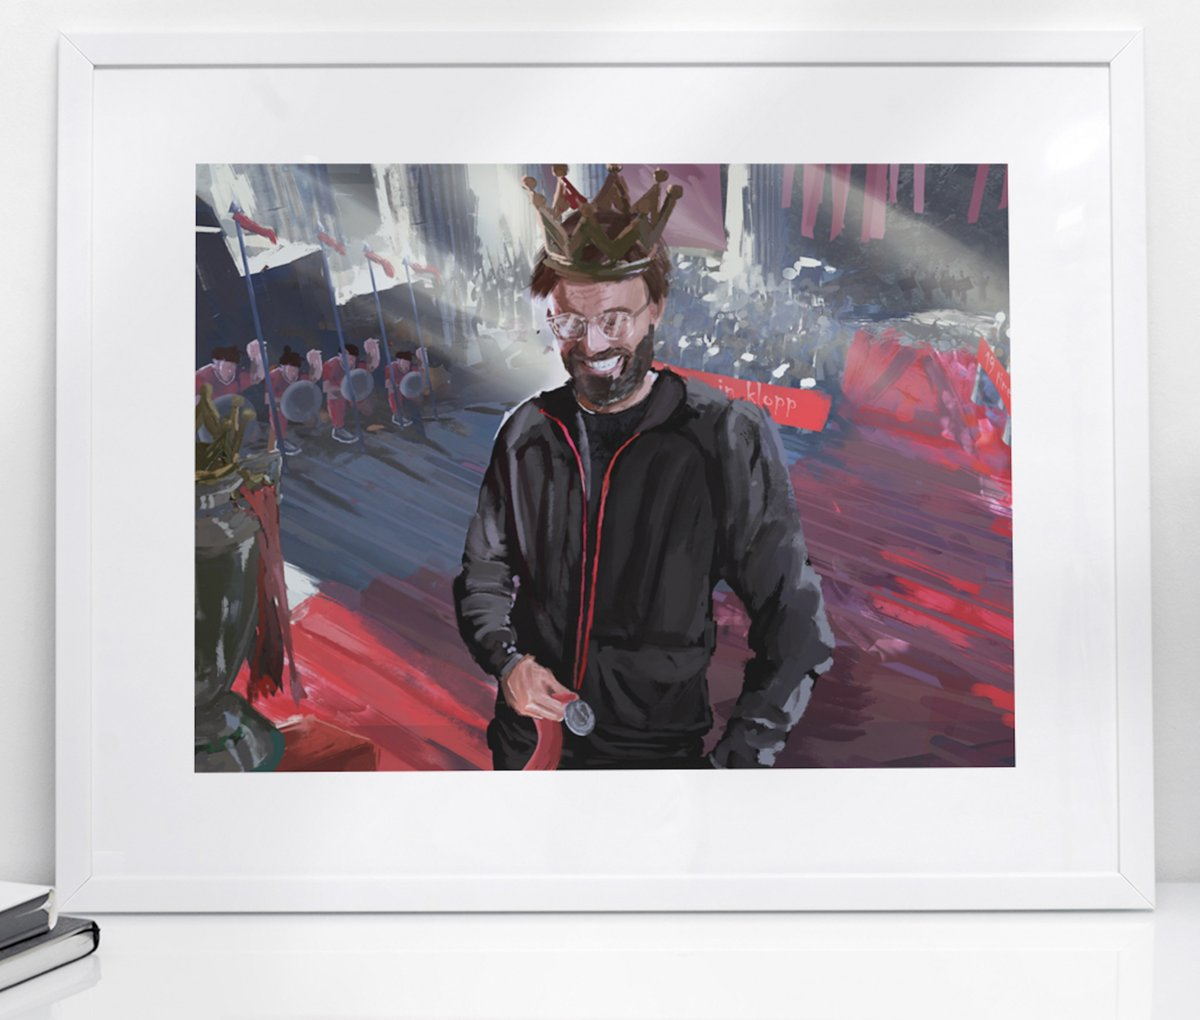 🙏 30 Year Wait Over - Thank you Jurgen  👑 CROWNING GLORY 🏆  🖼️ Stunning NEW Portrait by @andy__gfx inspired by #LFC manager Jurgen #Klopp.  📏 Sizes: A5, A4, A3  📦 Fast Worldwide Shipping  🔟 Get 10% OFF with Coupon Code - 10OFF  ➡️ From only £9 at https://t.co/25Dwu5OLg6 https://t.co/pmaVFKtBQh